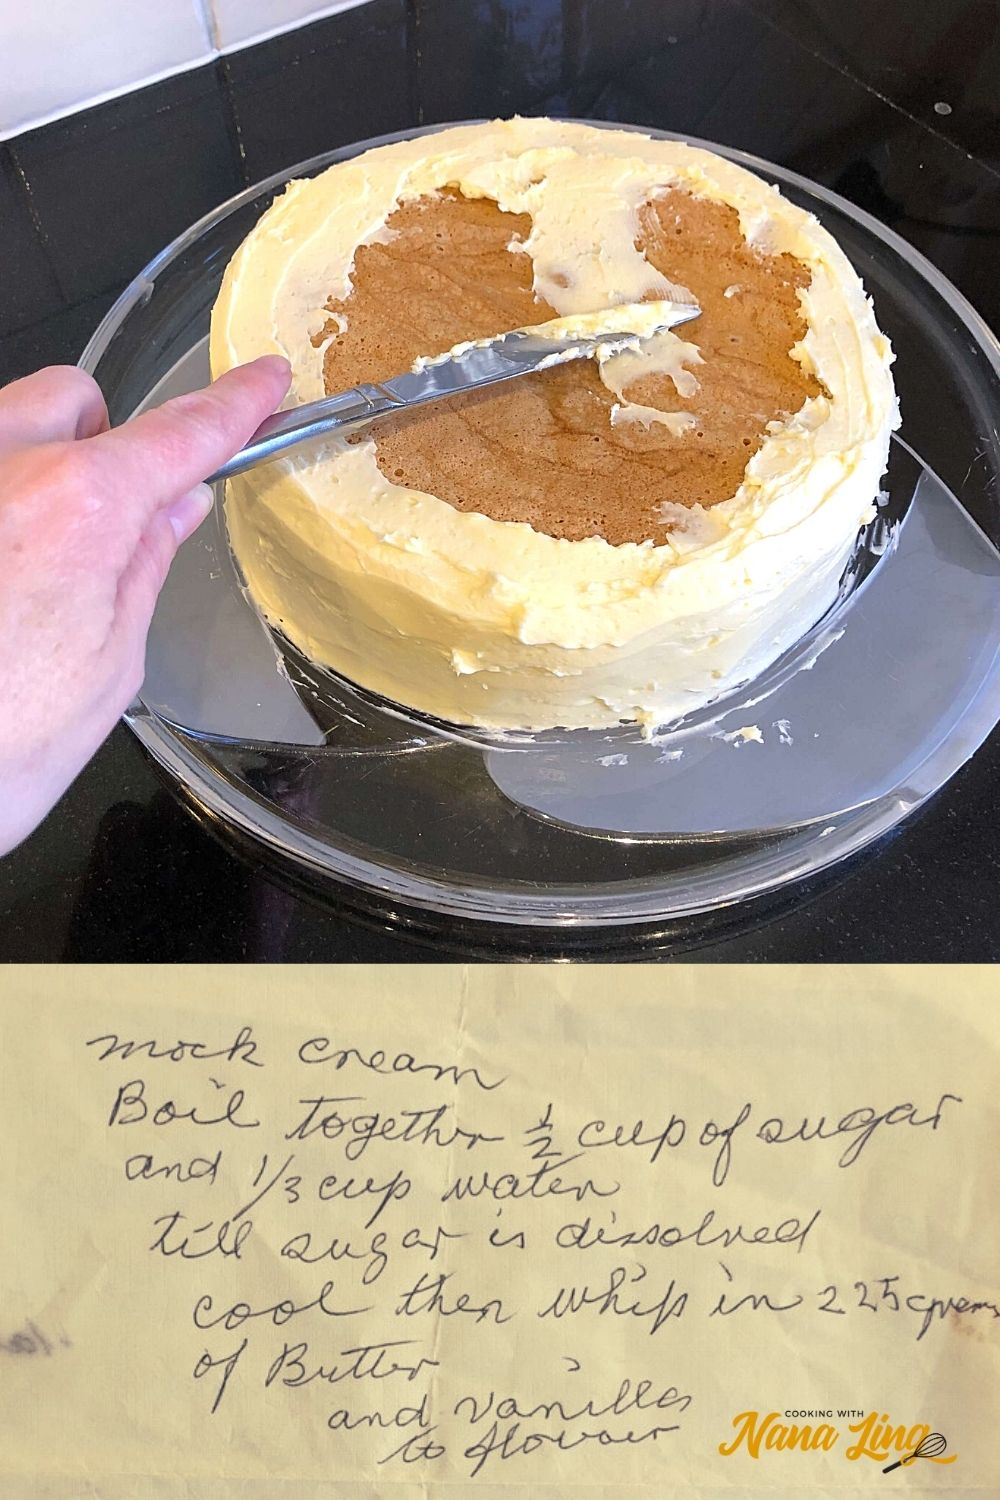 mock cream being spread on cake